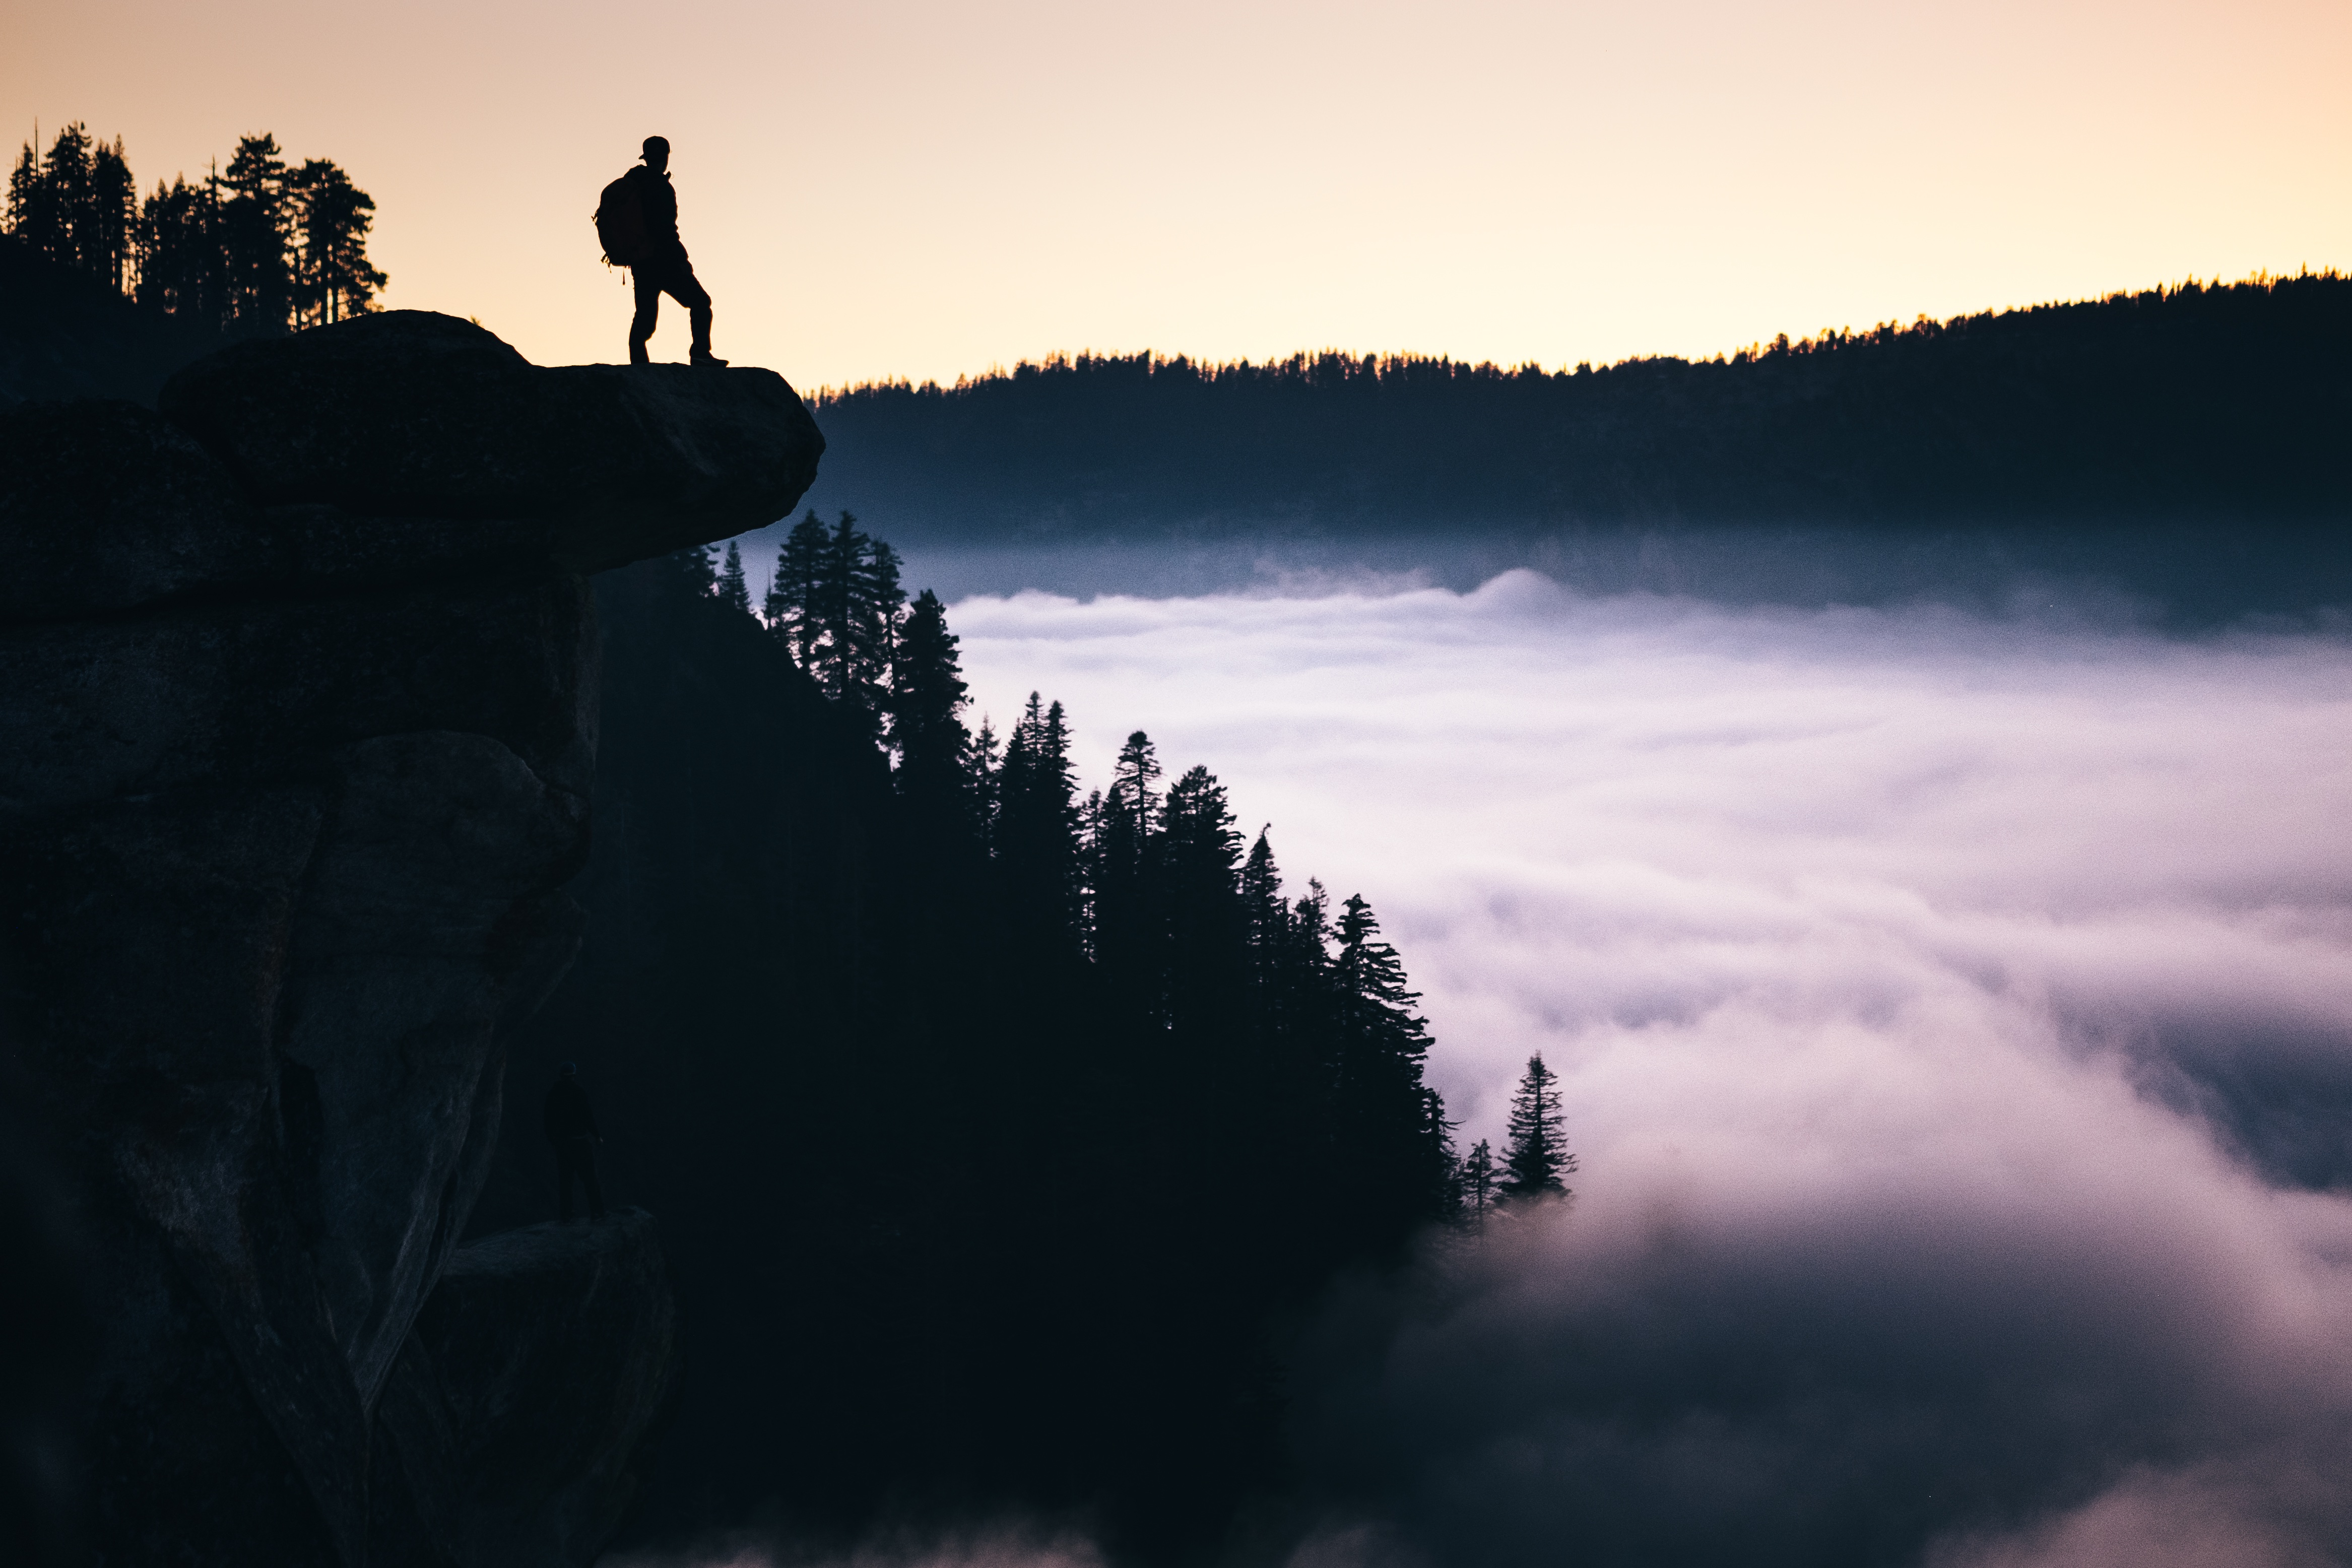 91443 free wallpaper 2160x3840 for phone, download images Nature, Usa, Fog, Break, Precipice, United States, Human, Person, Yosemite Valley, Freedom, Glacier Point 2160x3840 for mobile